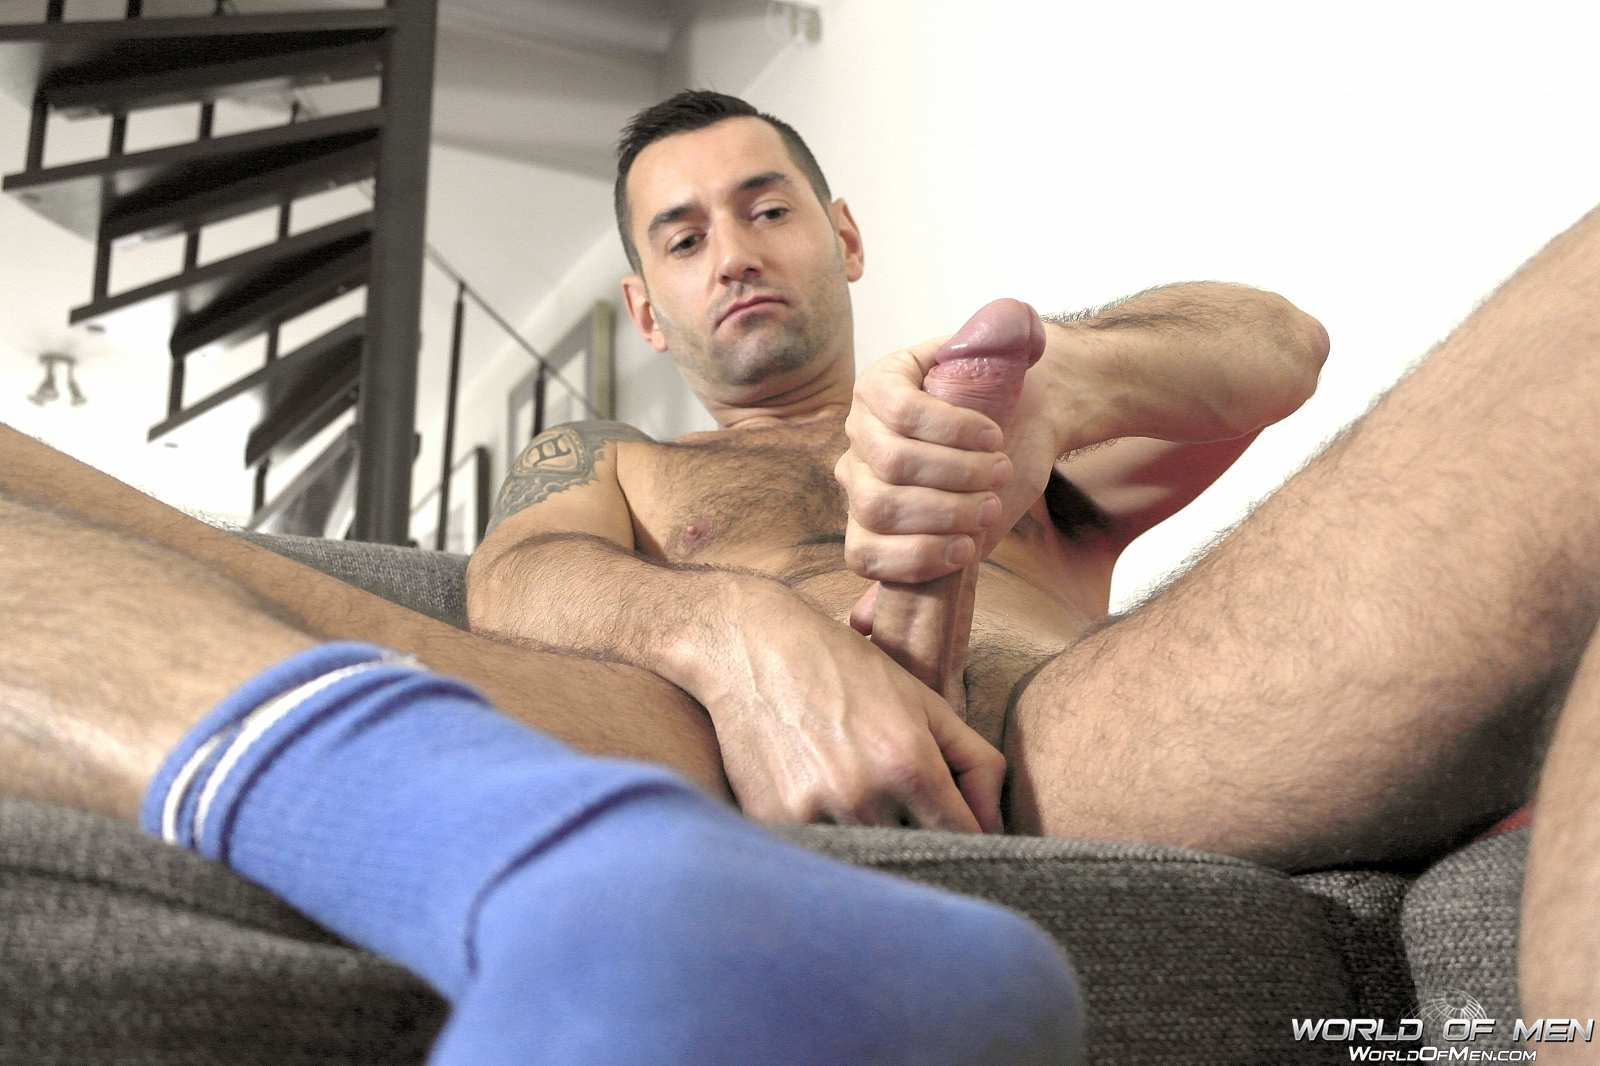 World-Of-Men-Chris-ADam-Big-Uncut-Cock-Jerk-Off-Masturbation-Amateur-Gay-Porn-03 Hairy Sexy Stud Fingers His Ass And Plays With His Huge Uncut Cock